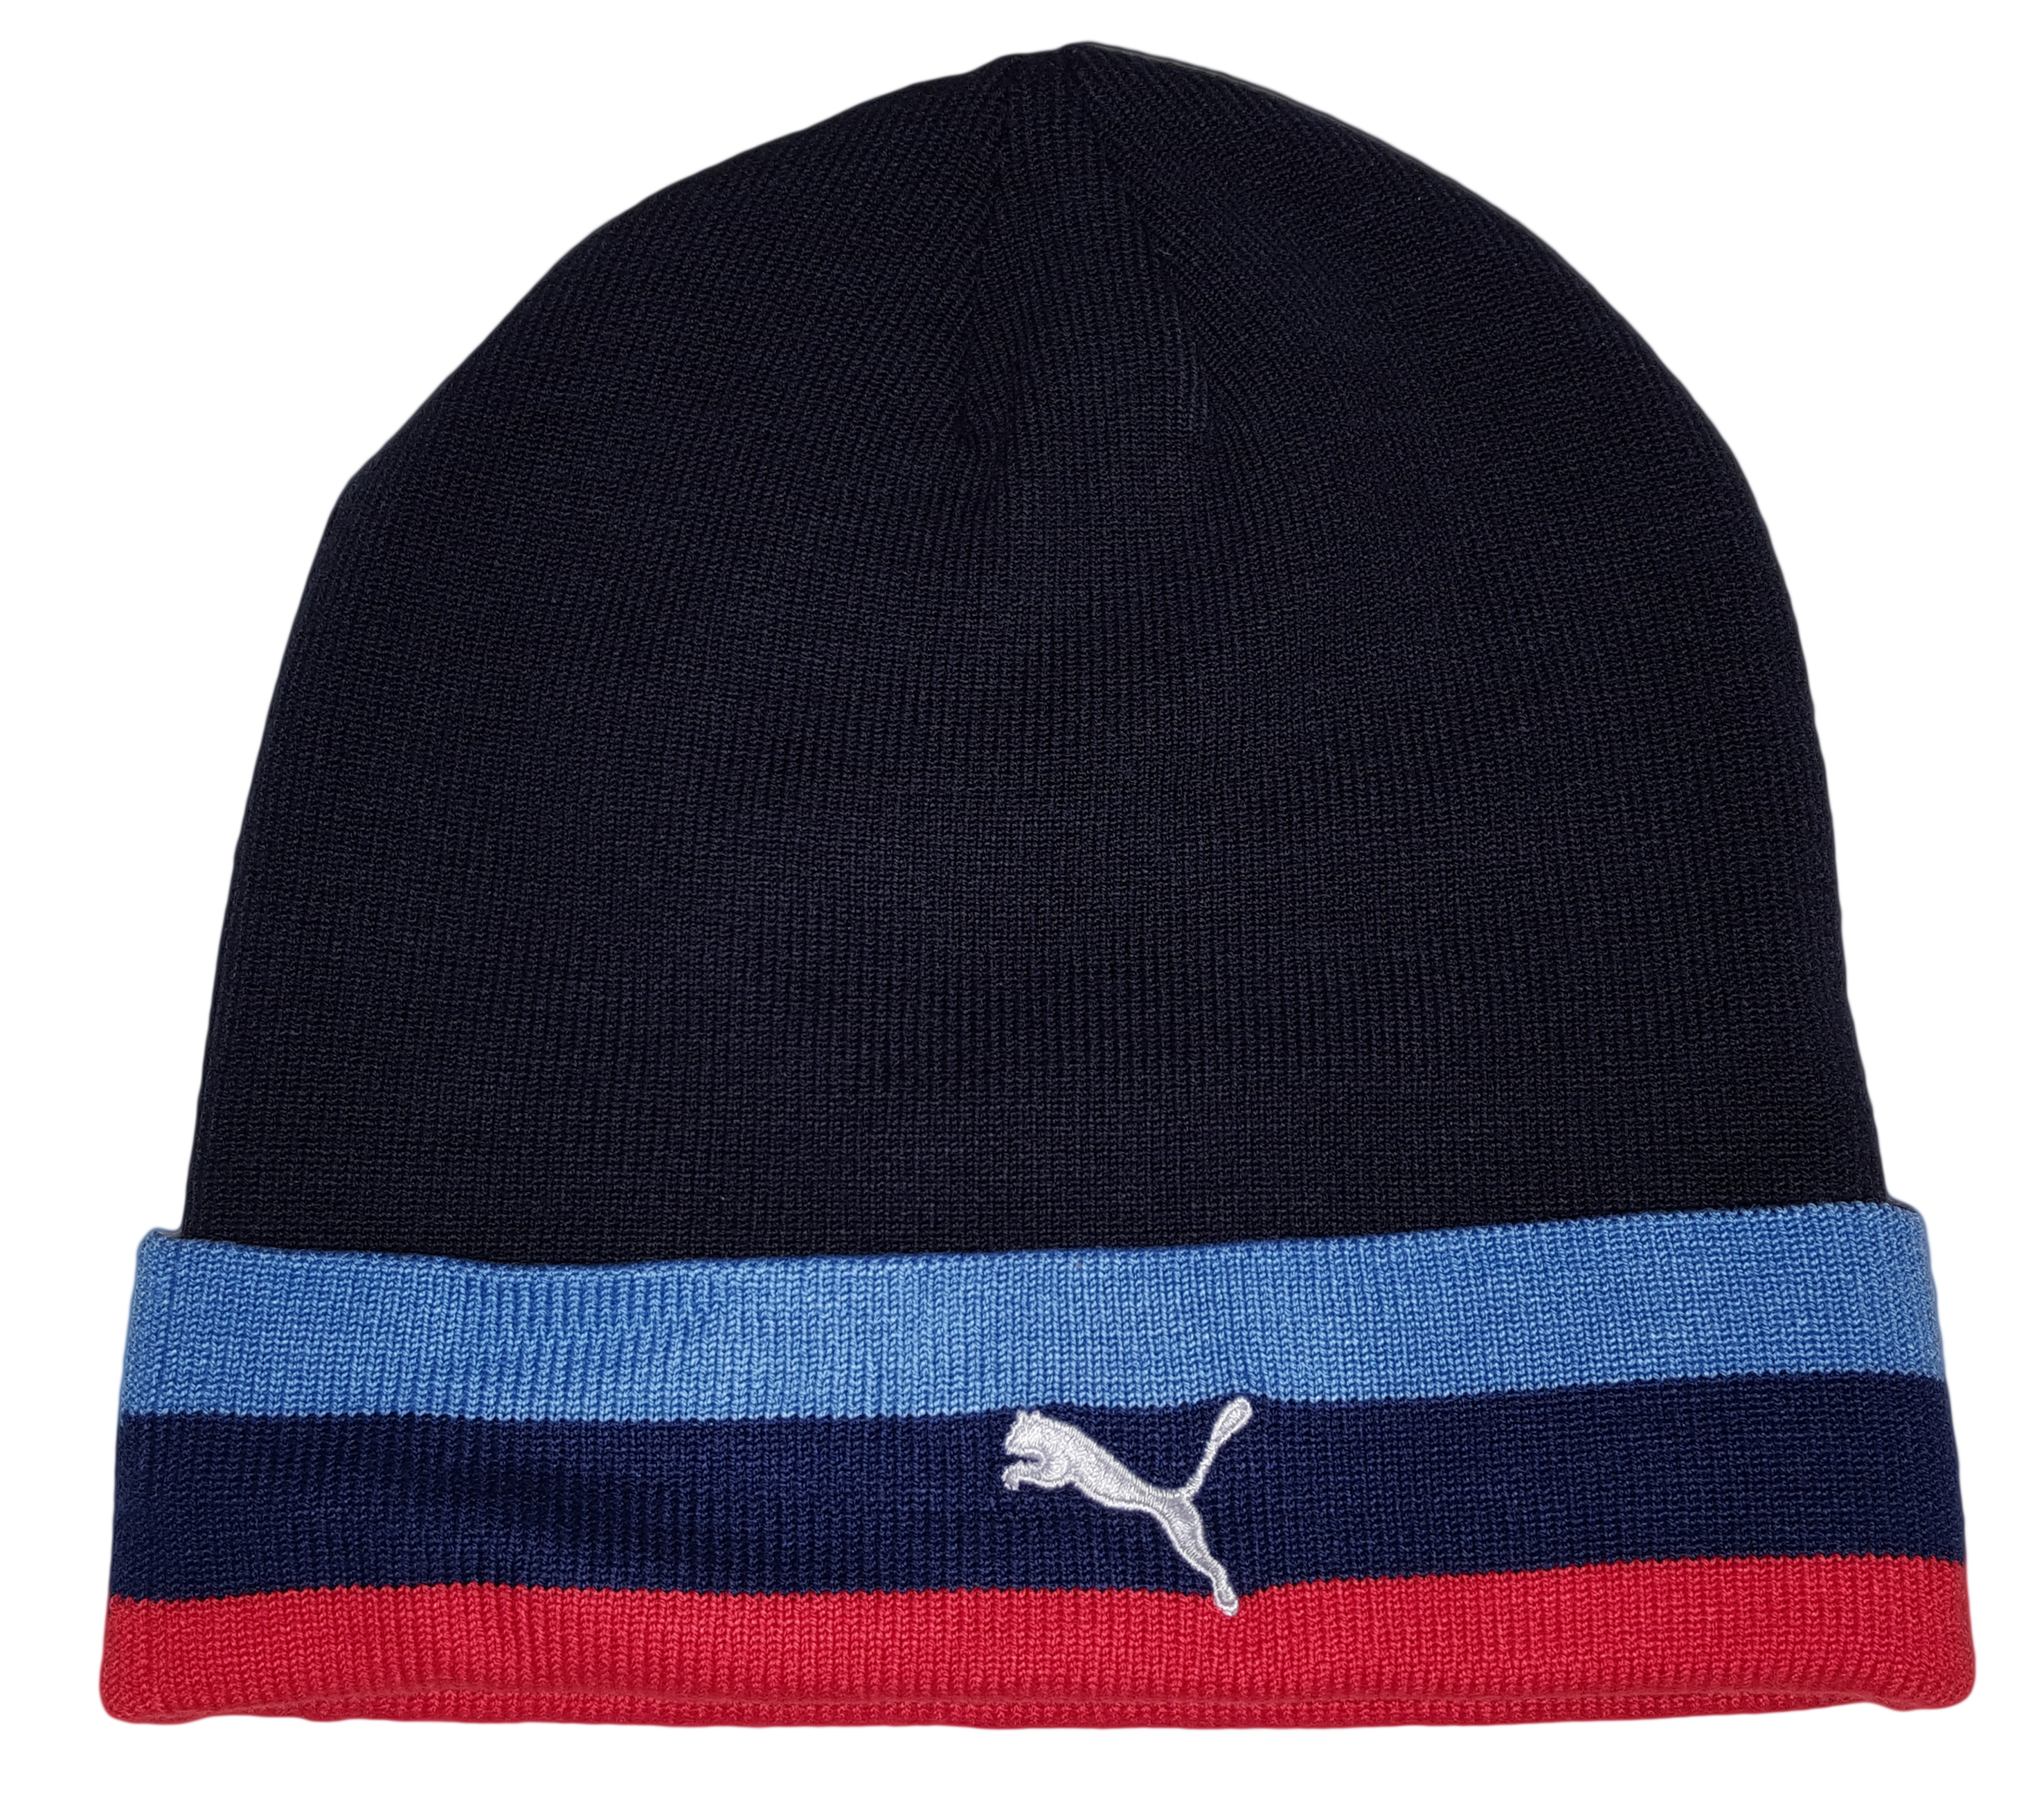 ... Cap  hot sale online f55ba c1f99 Home Brands Puma PUMA Official BMW  Motorsport Beanie Team MSP Power ... b1ad7550989